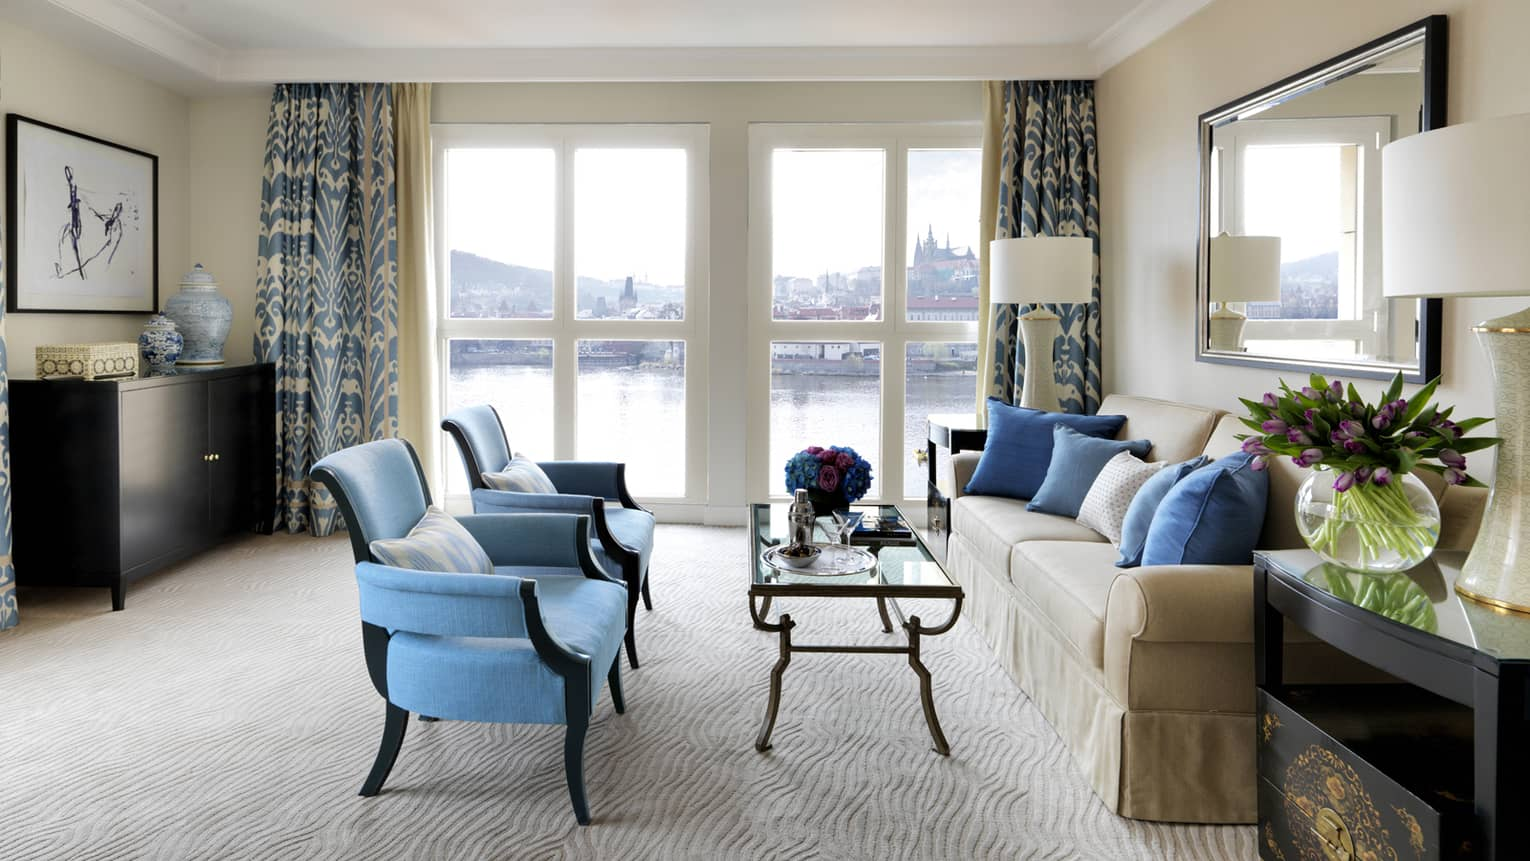 River Suite with two blue armchairs in front of glass coffee table, sofa, floor-to-ceiling windows with Vltava River view